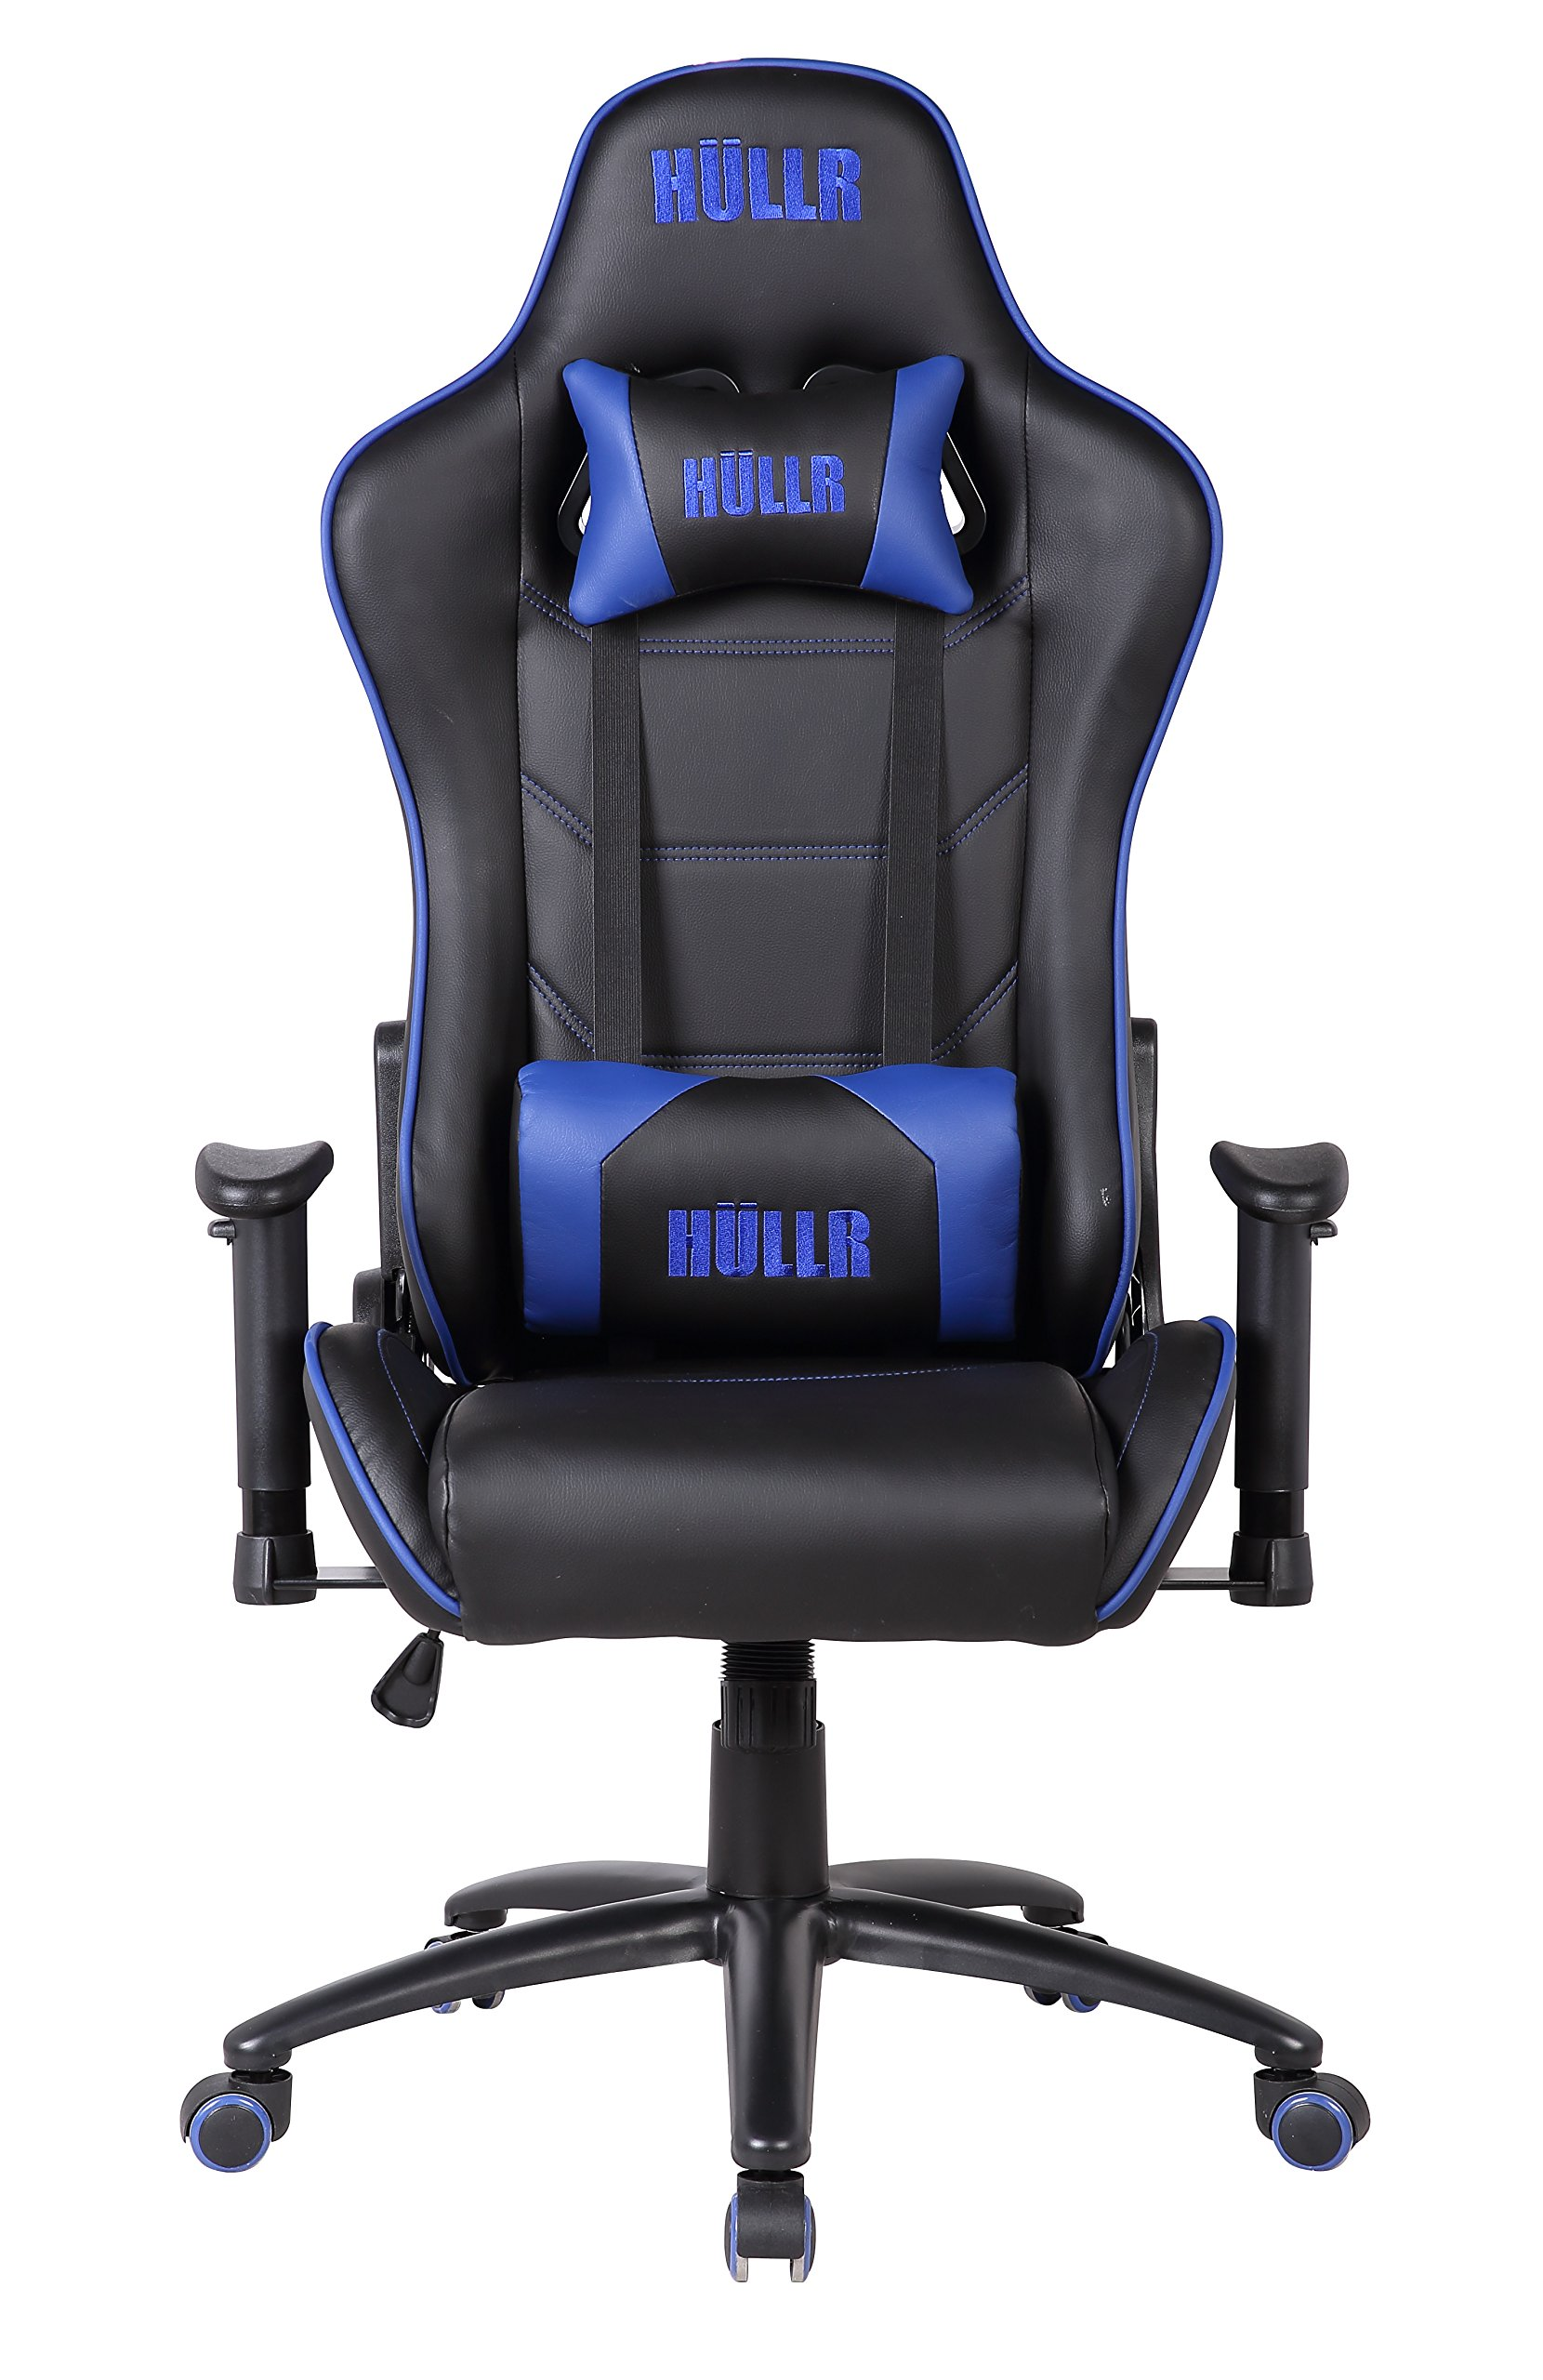 HULLR Gaming Racing Computer Office Chair, Executive High Back GT Ergonomic Reclining Design with Detachable Lumbar Backrest & Headrest (PC PS4 XBOX Laptop) (Black/Blue)